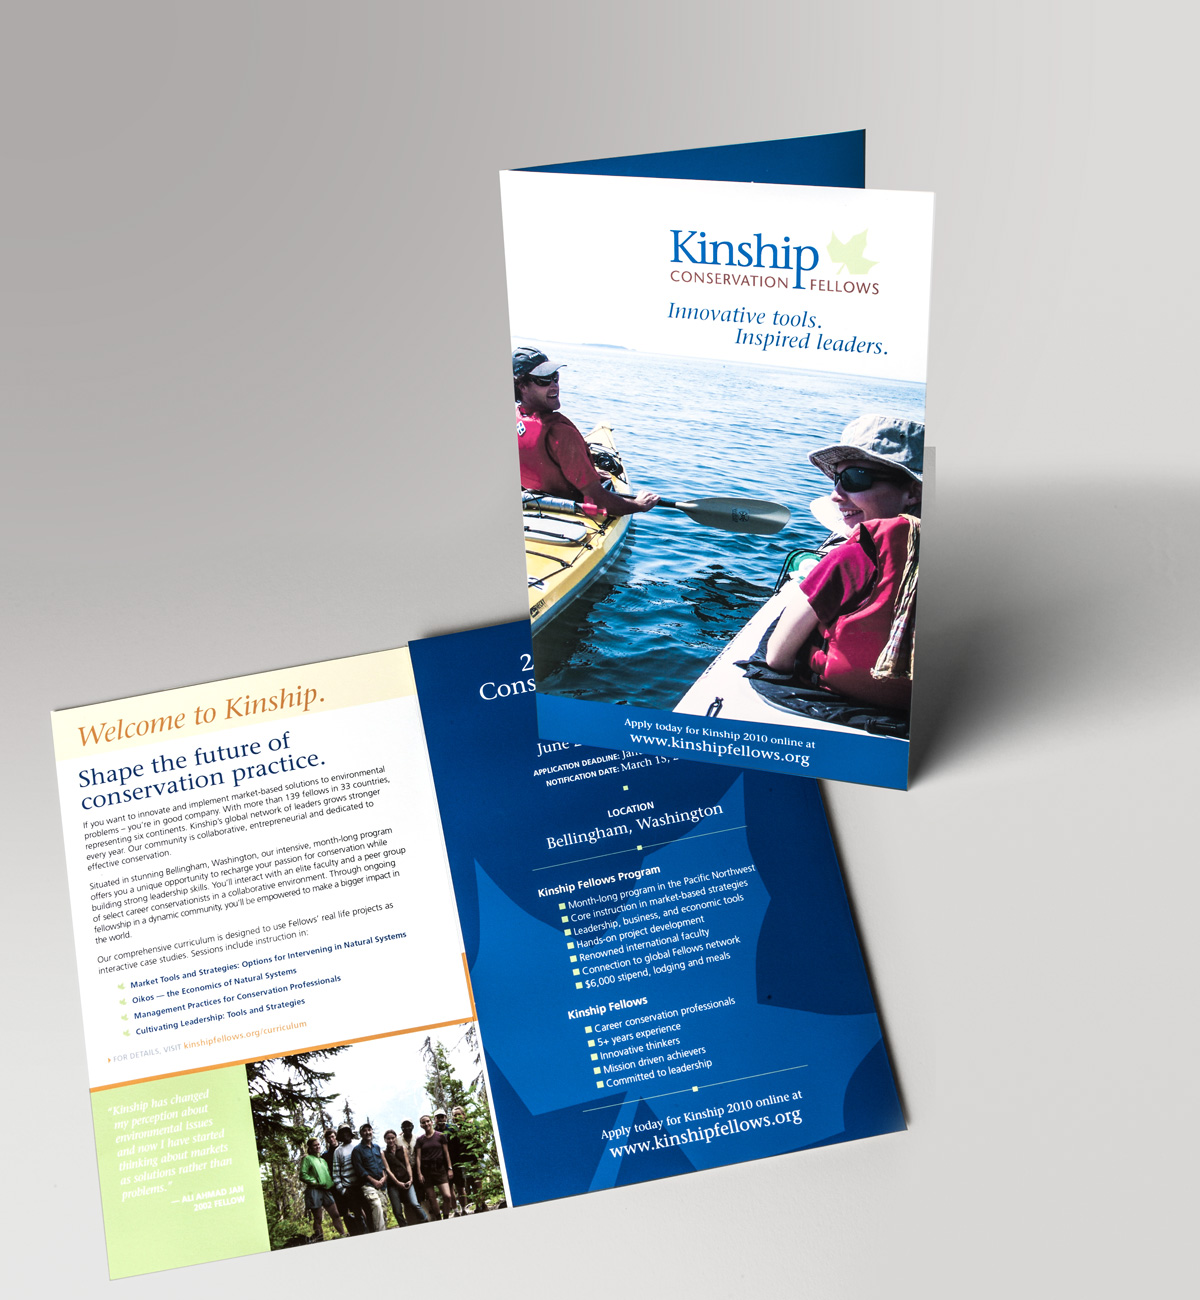 Kinship Conservation Fellows Brochure